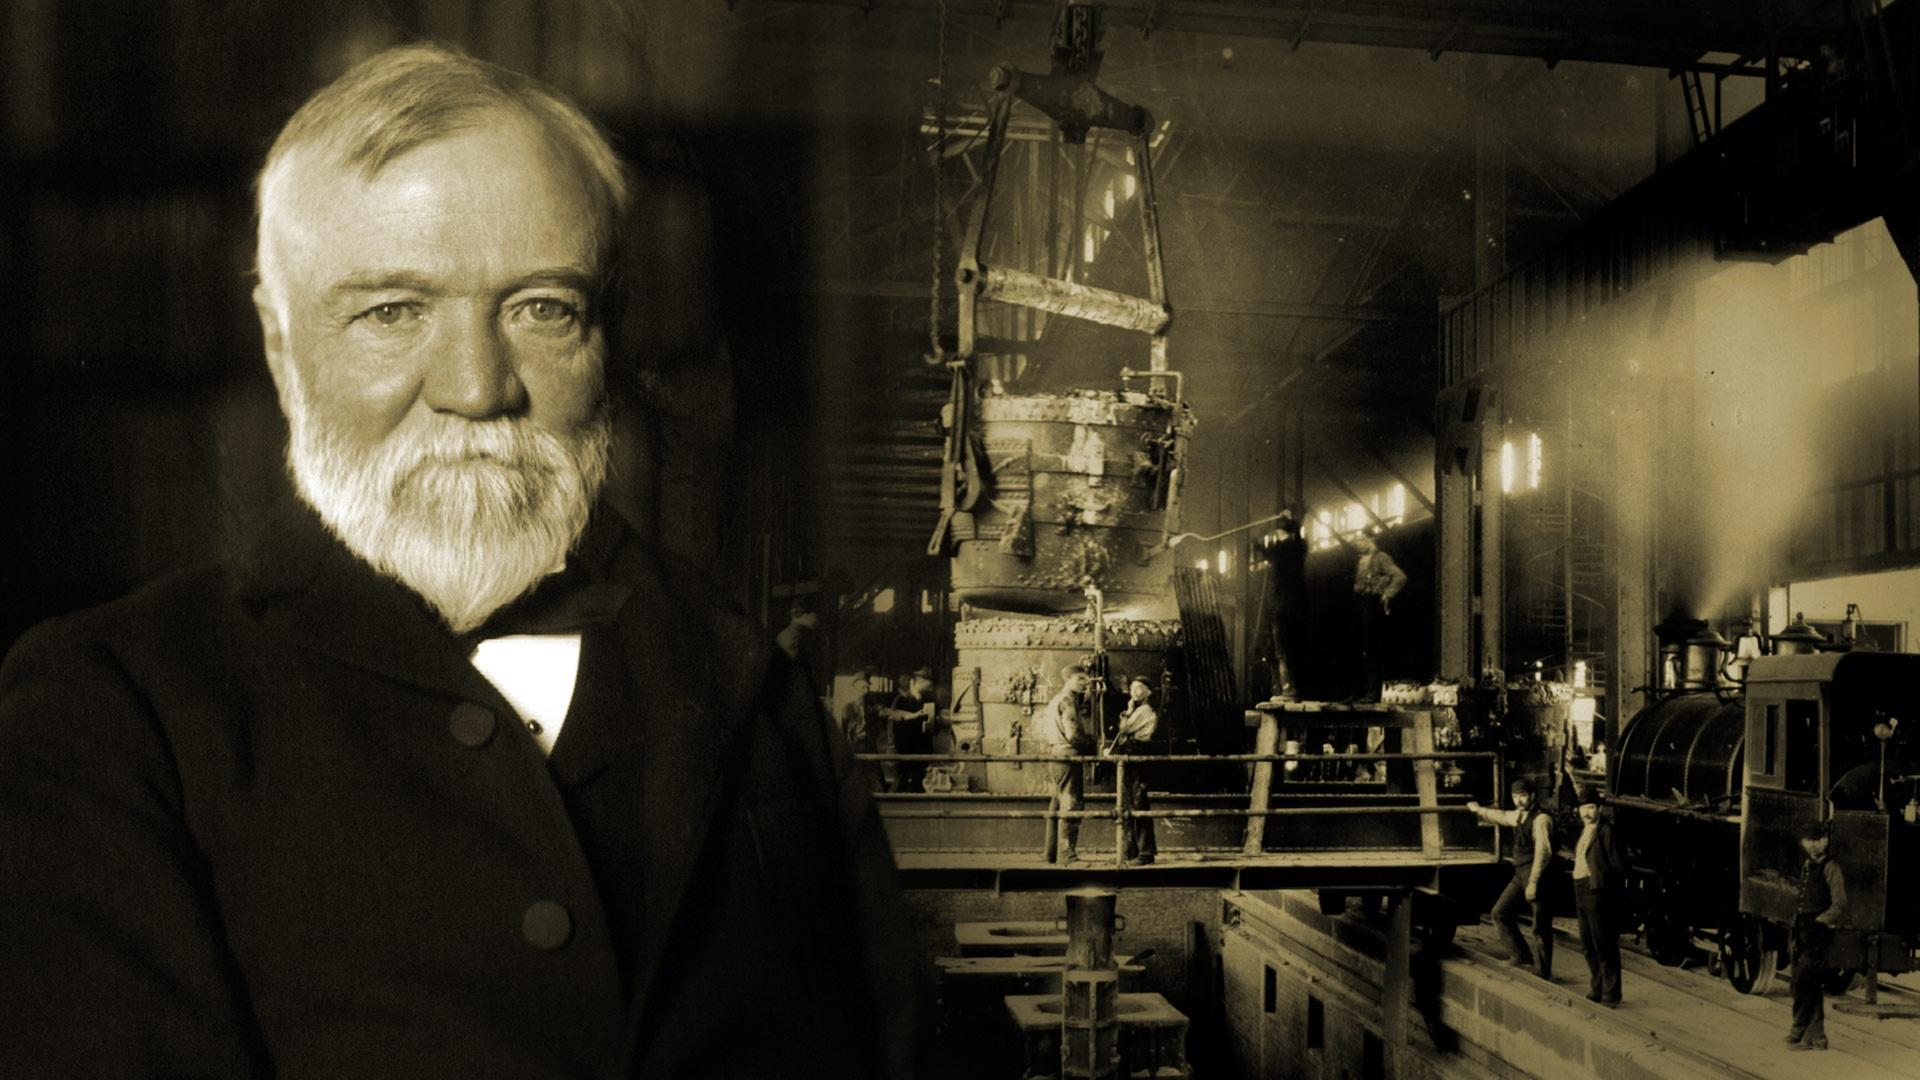 a biography of andrew carnegie a leader in the steel industry Andrew carnegie (november 25, 1835 – august 11, 1919) was a scottish-american industrialist who led the enormous expansion of the american steel industry.